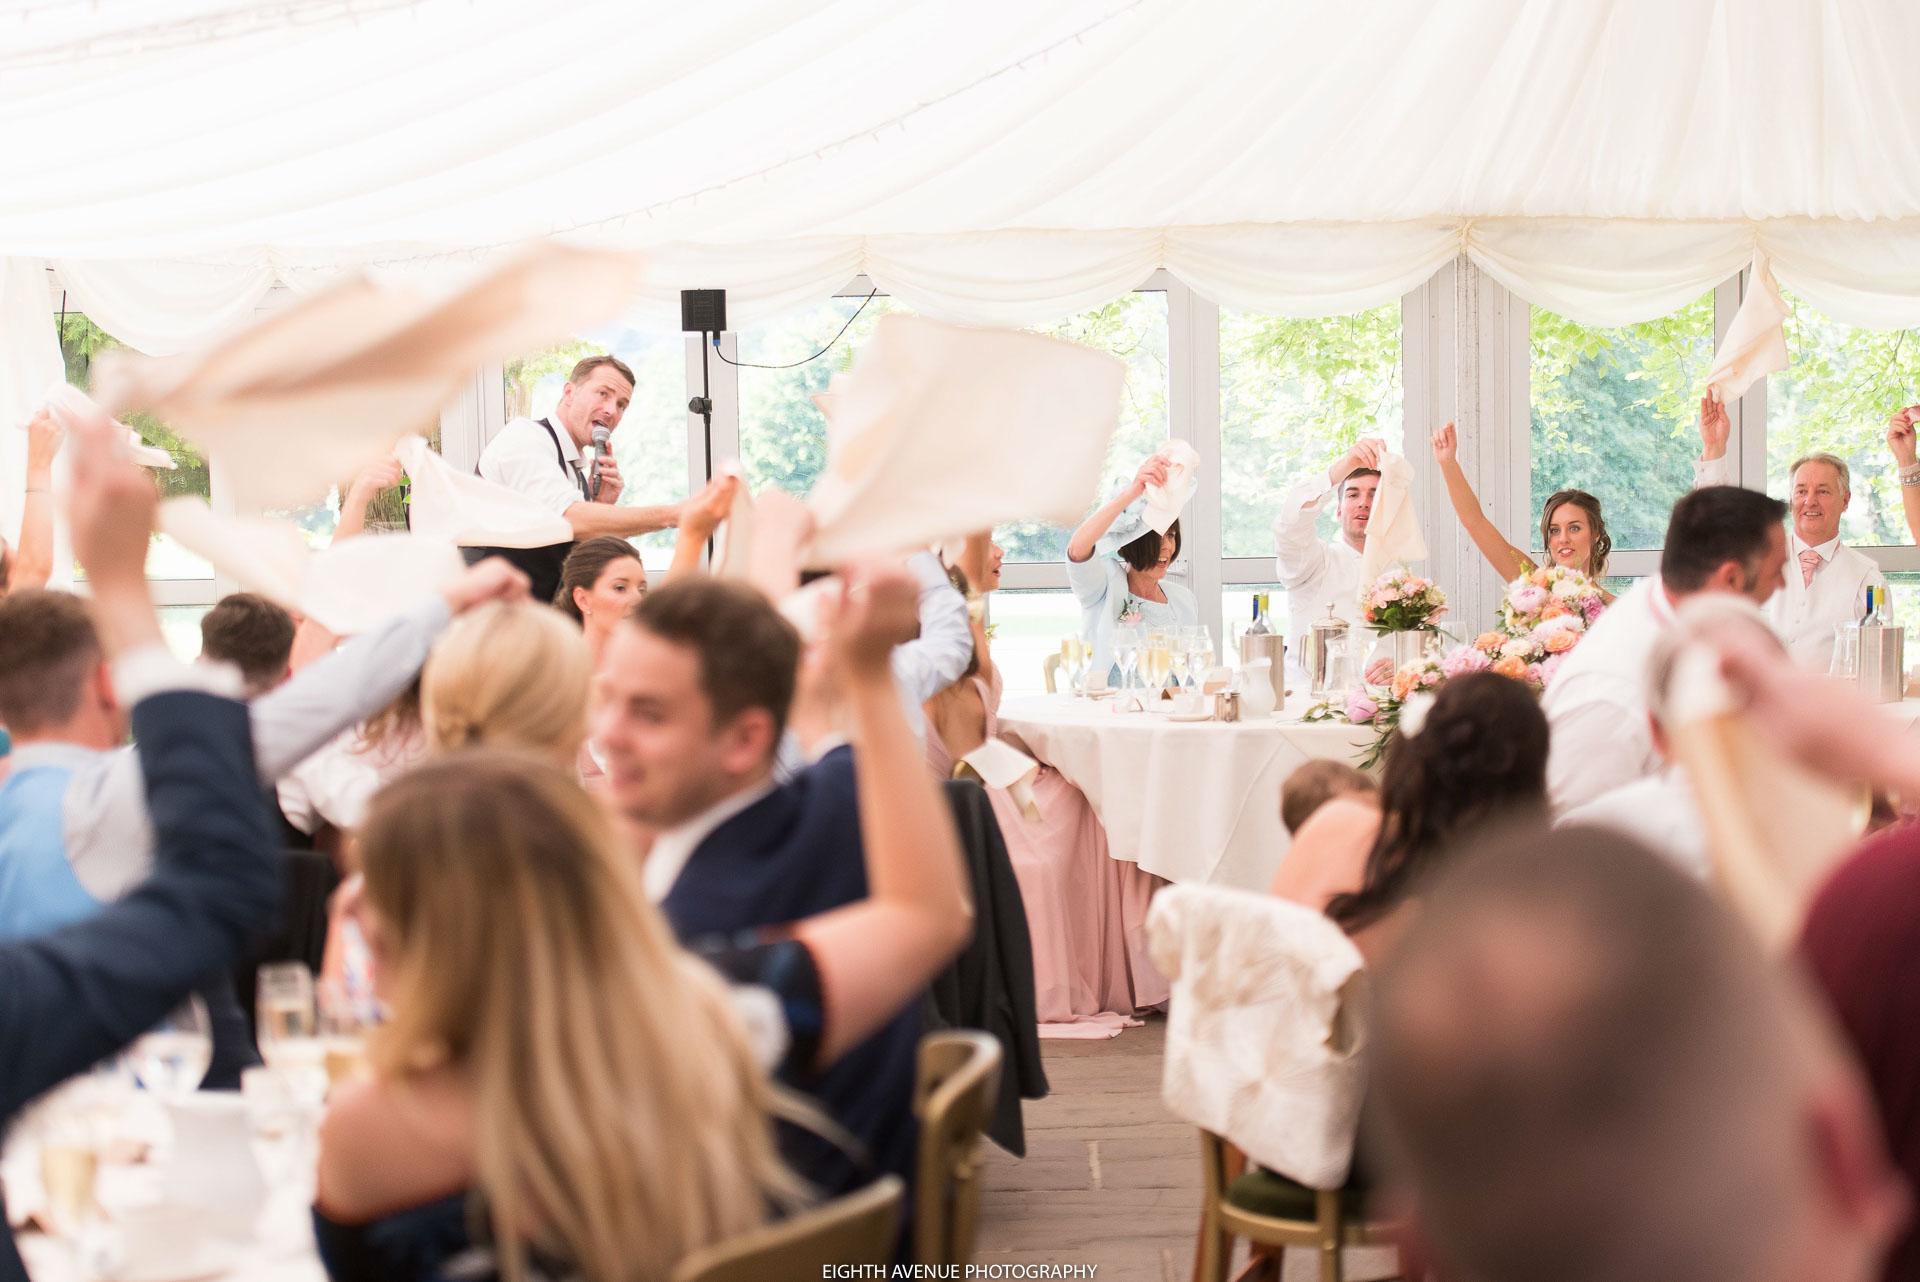 Guests waving napkins at the Inn at Whitewell